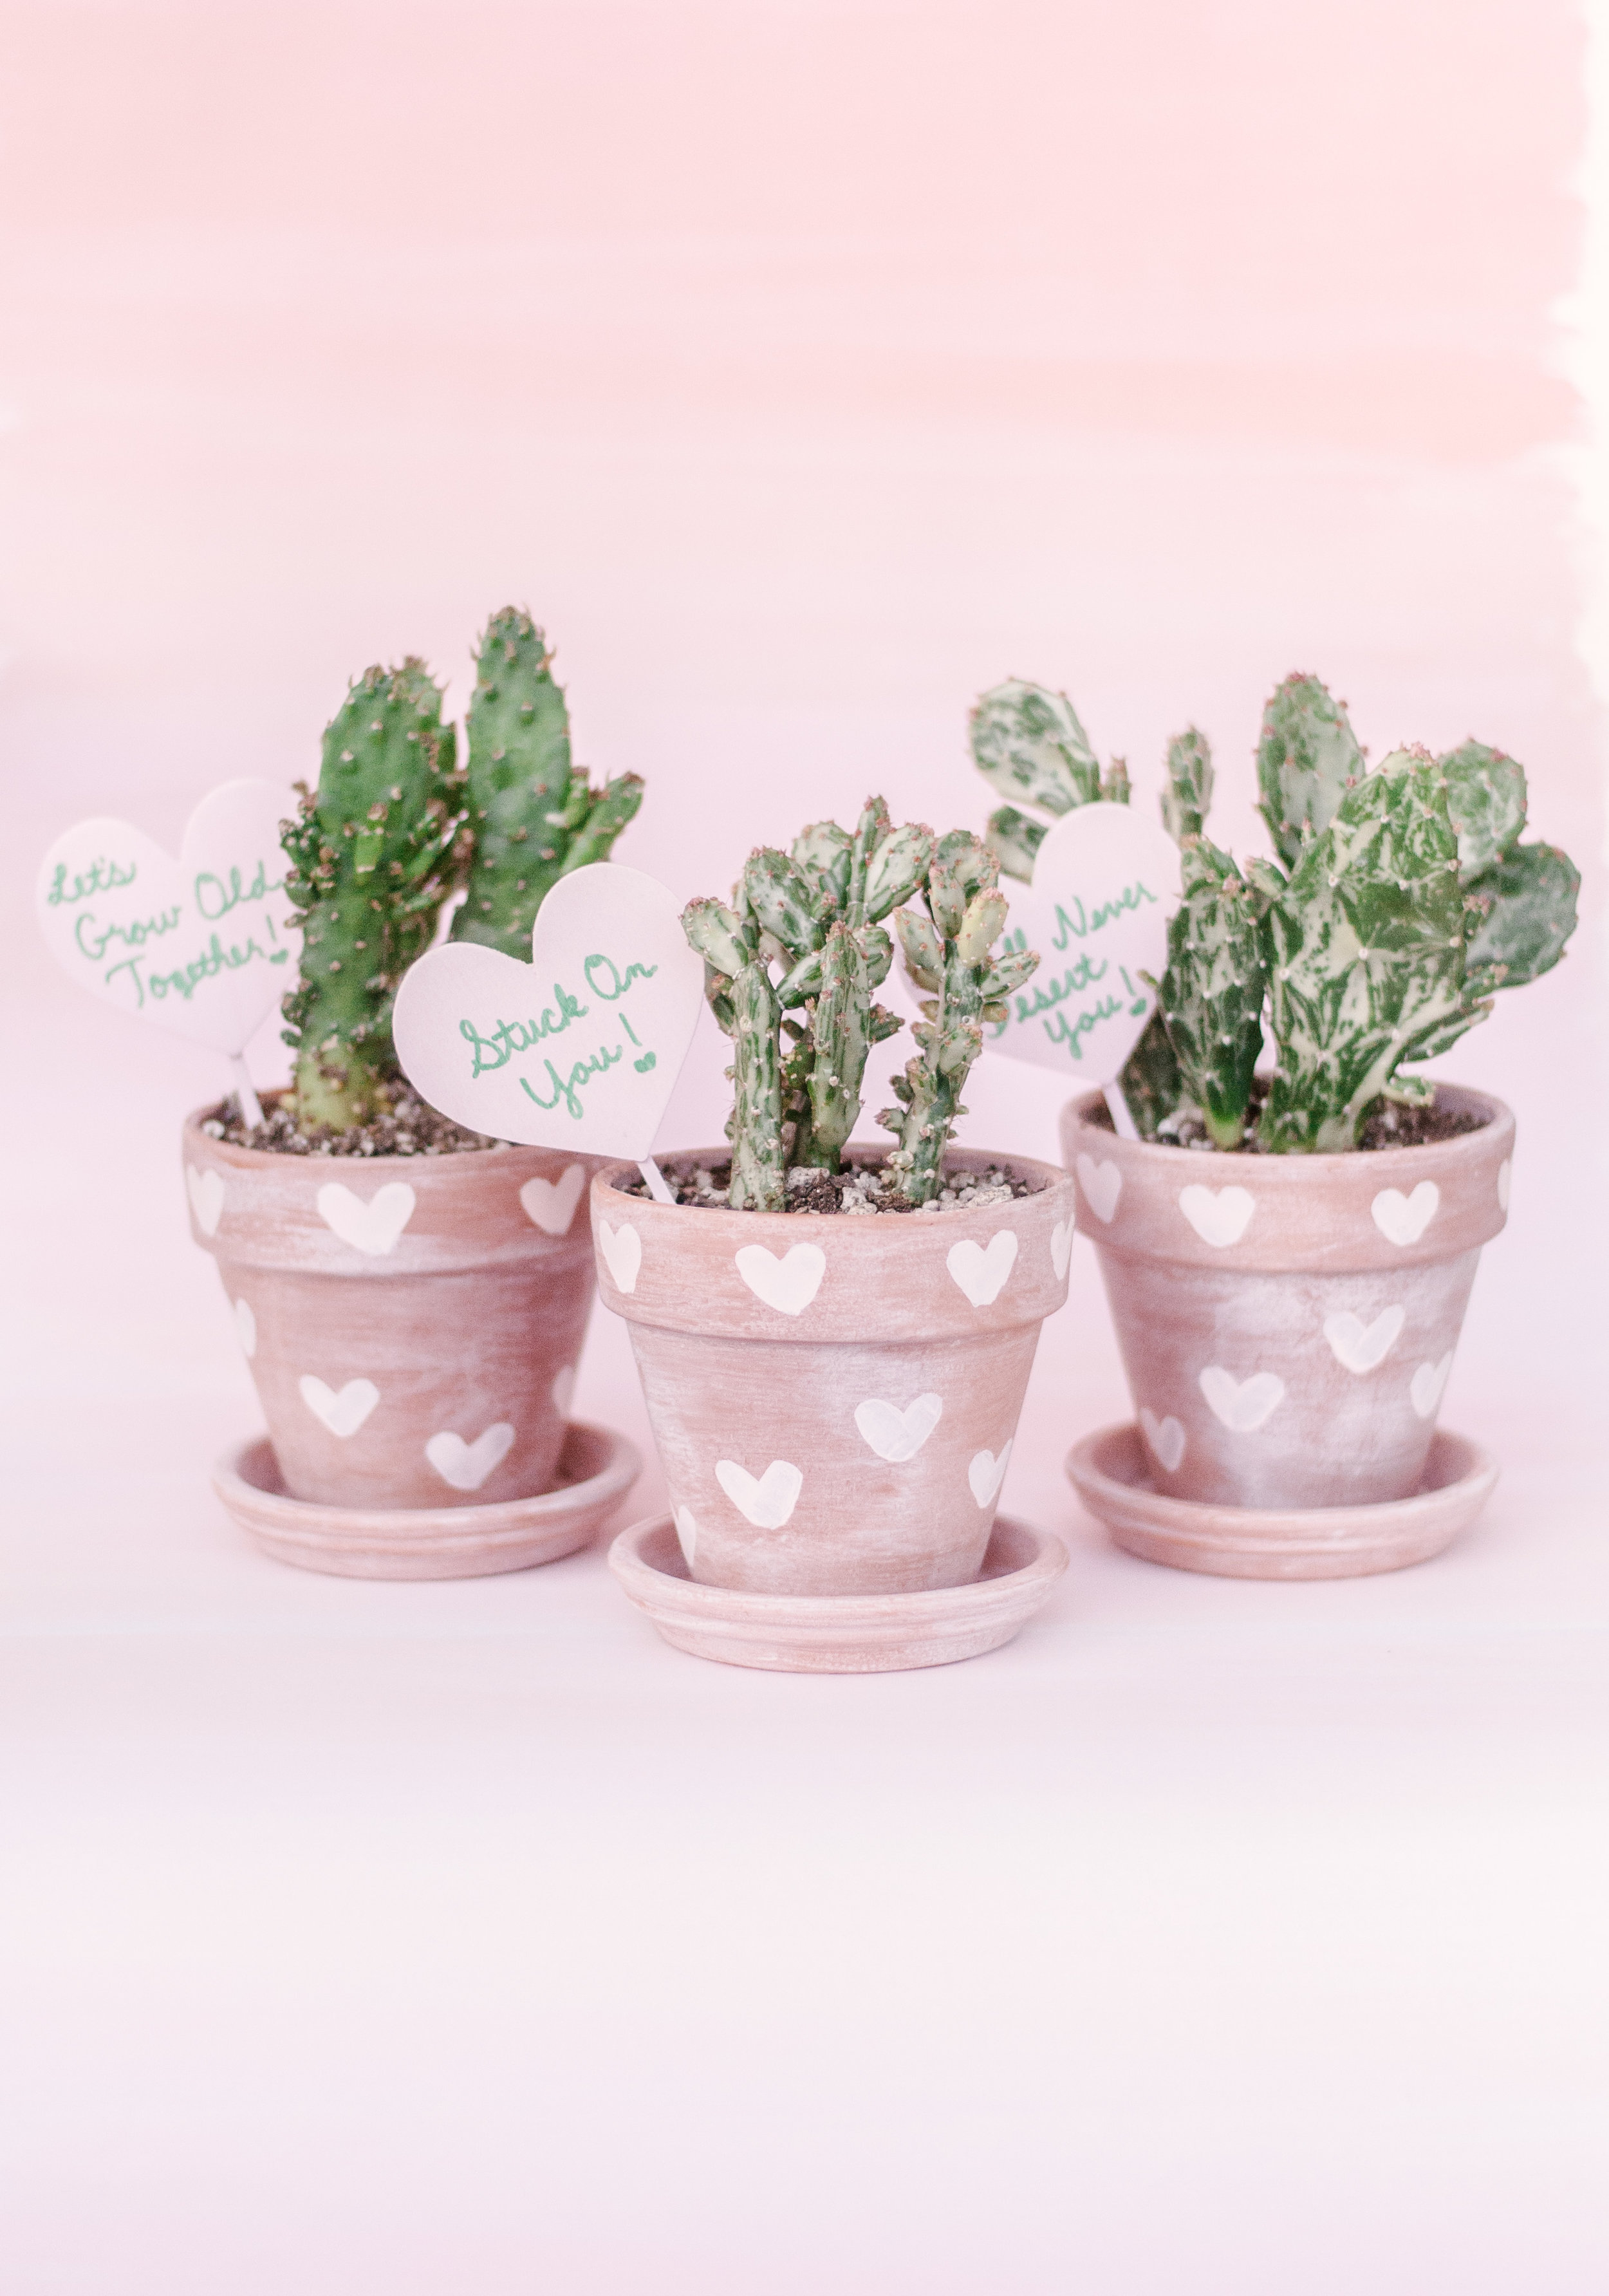 DIY Whitewashed Painted Terra Cotta Pots